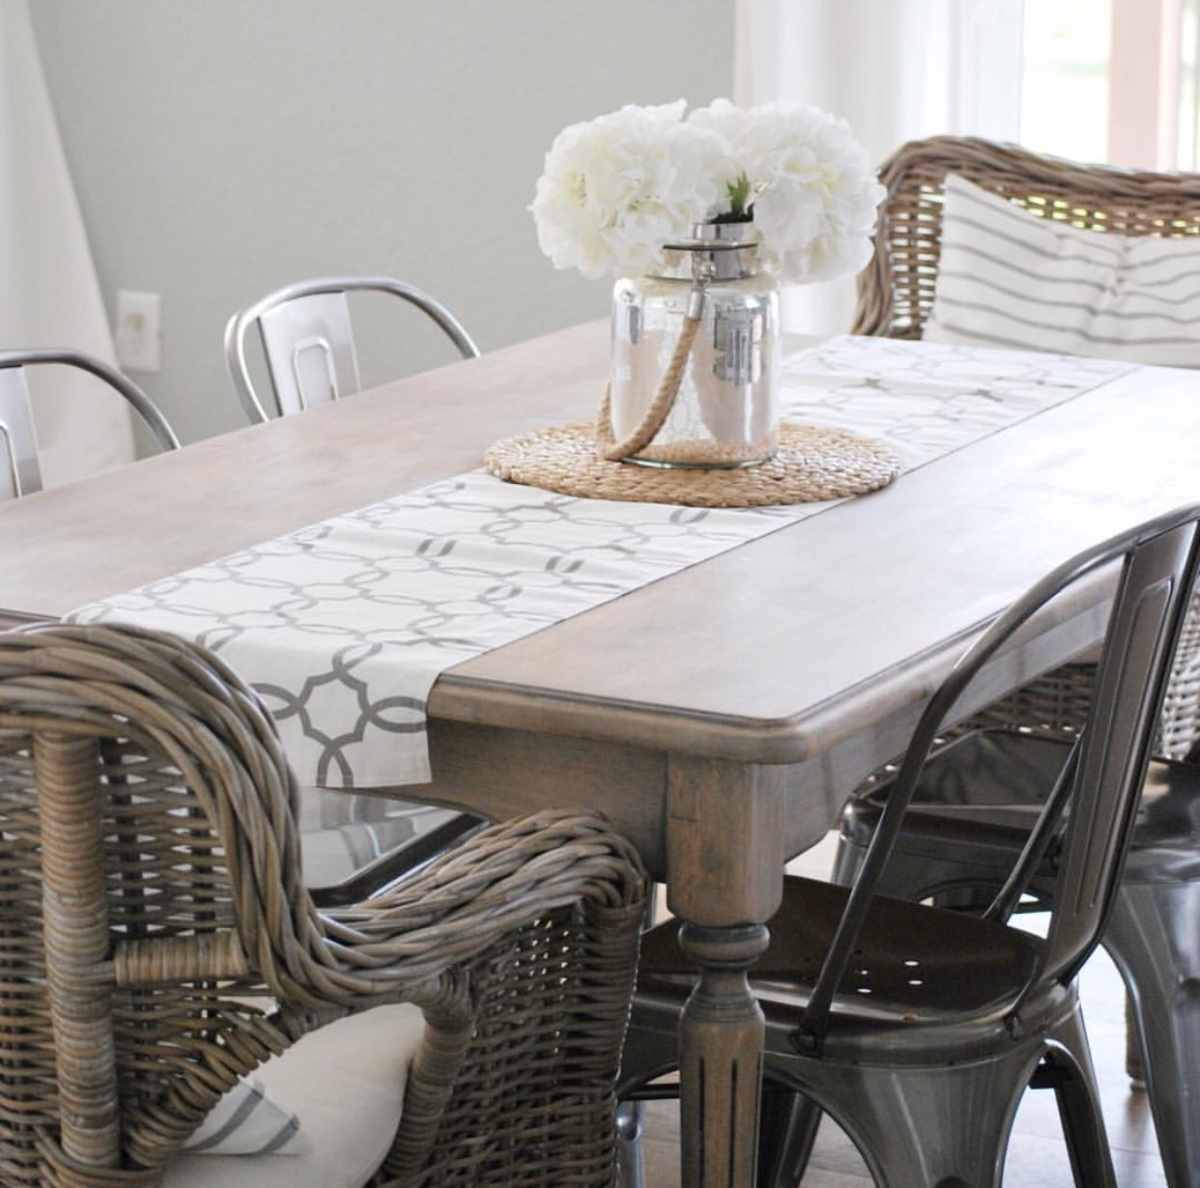 Cleaning Black Kitchen Table: PAINT THE WORLD WHITE By Brynne